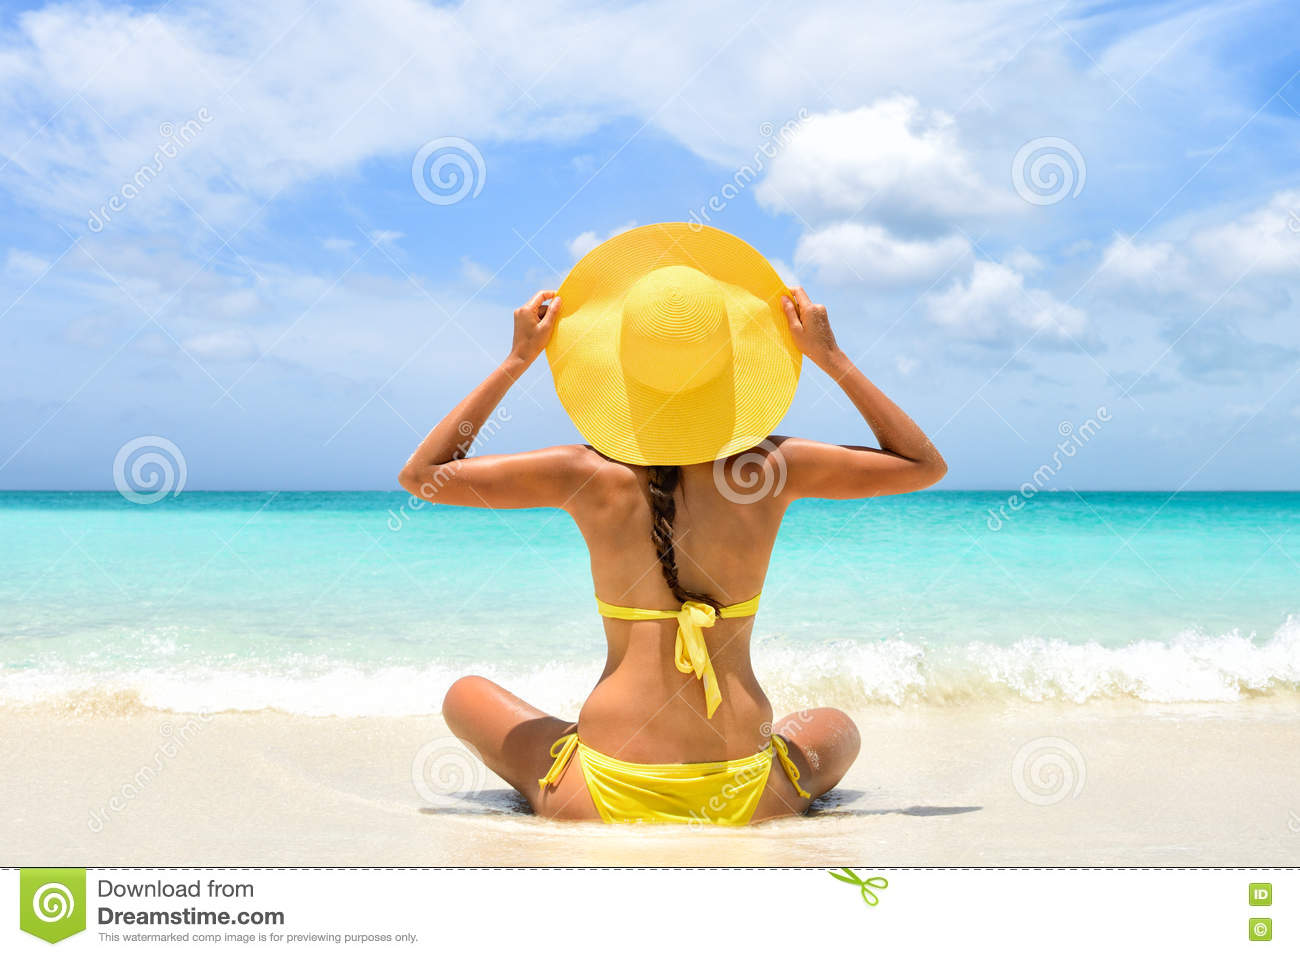 Download Summer Beach Vacation Woman Enjoying Sun Holiday Stock Photo - Image of enjoying, people: 72044964